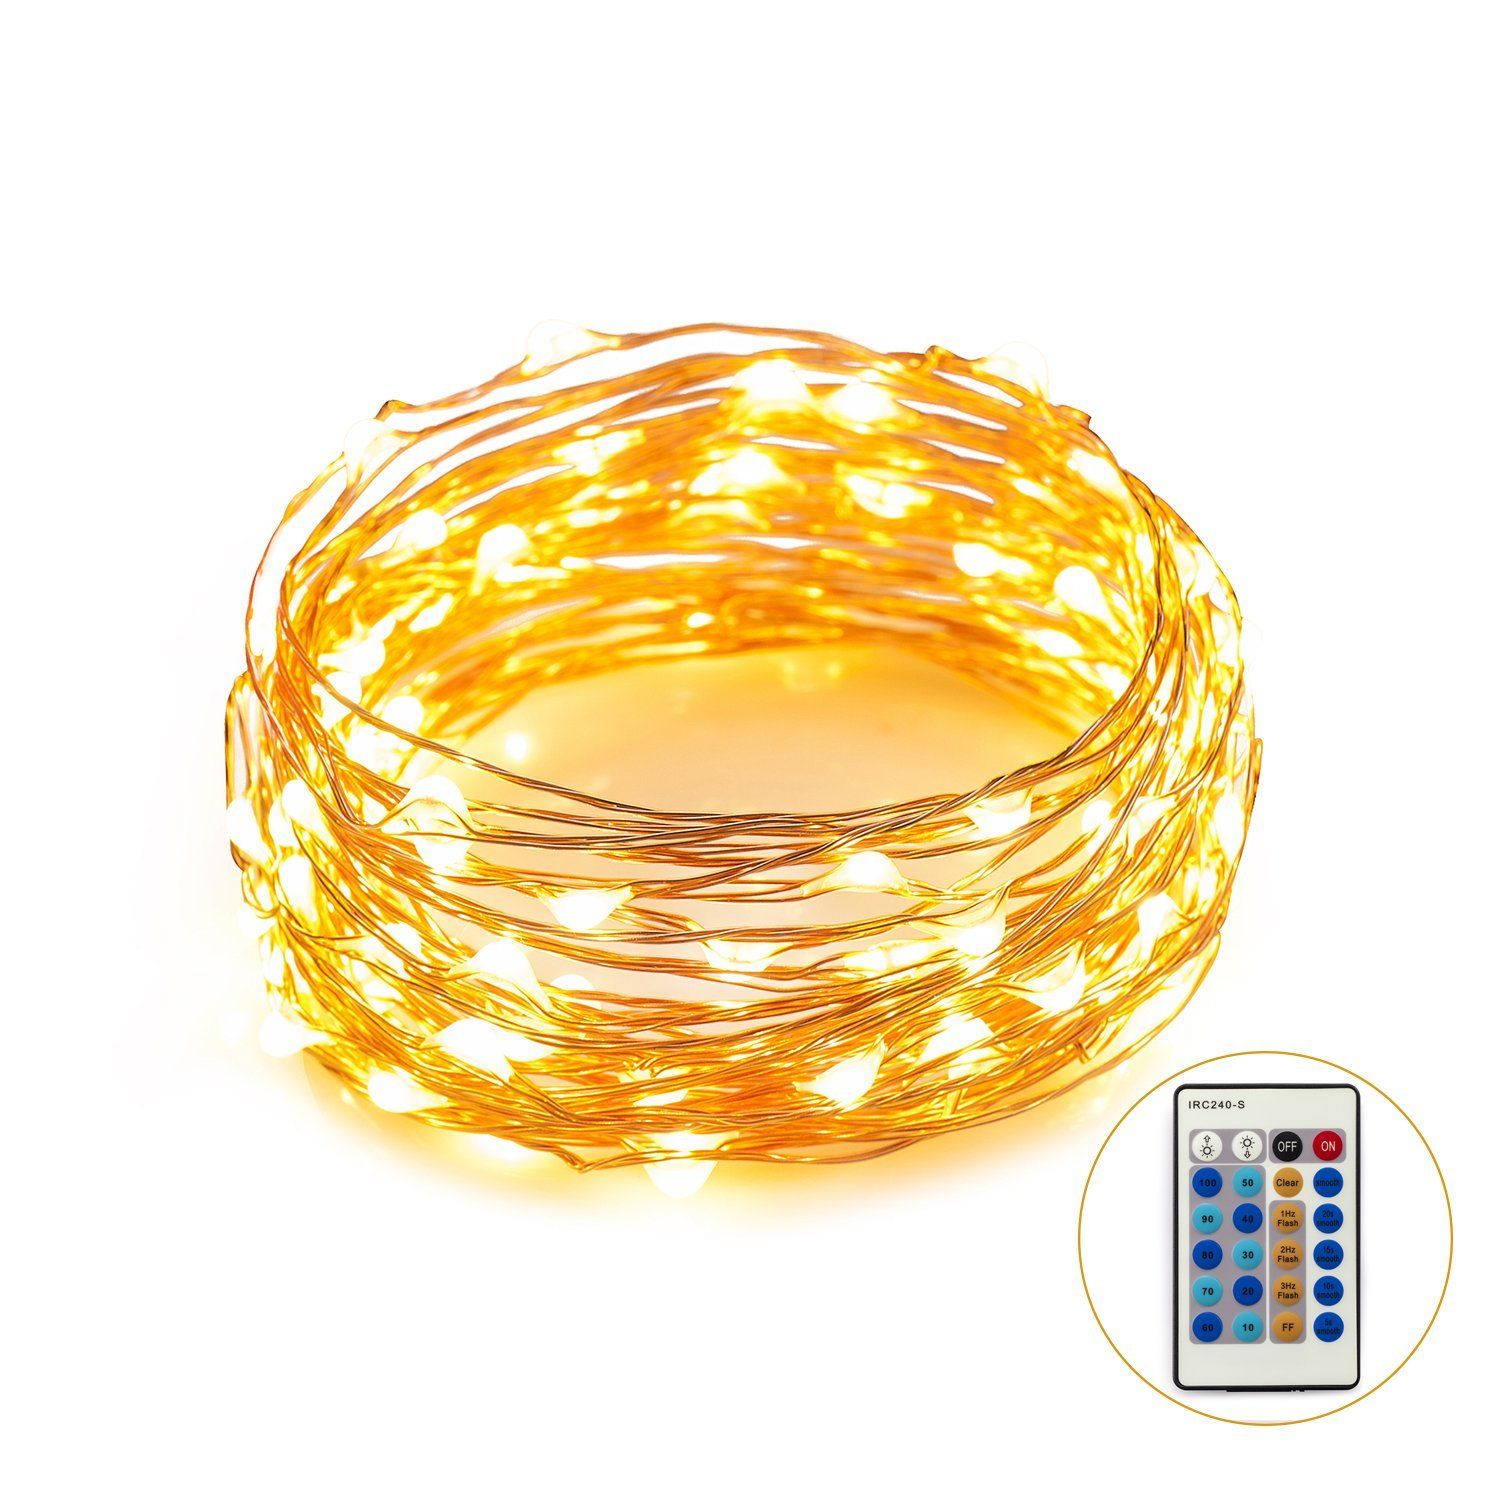 Weico Dimmable Led String Lights Copper Wire 100leds Warm White Strip 12v Dc Starry Light Rope For Gardens Homes Patio Wedding Dancing Party